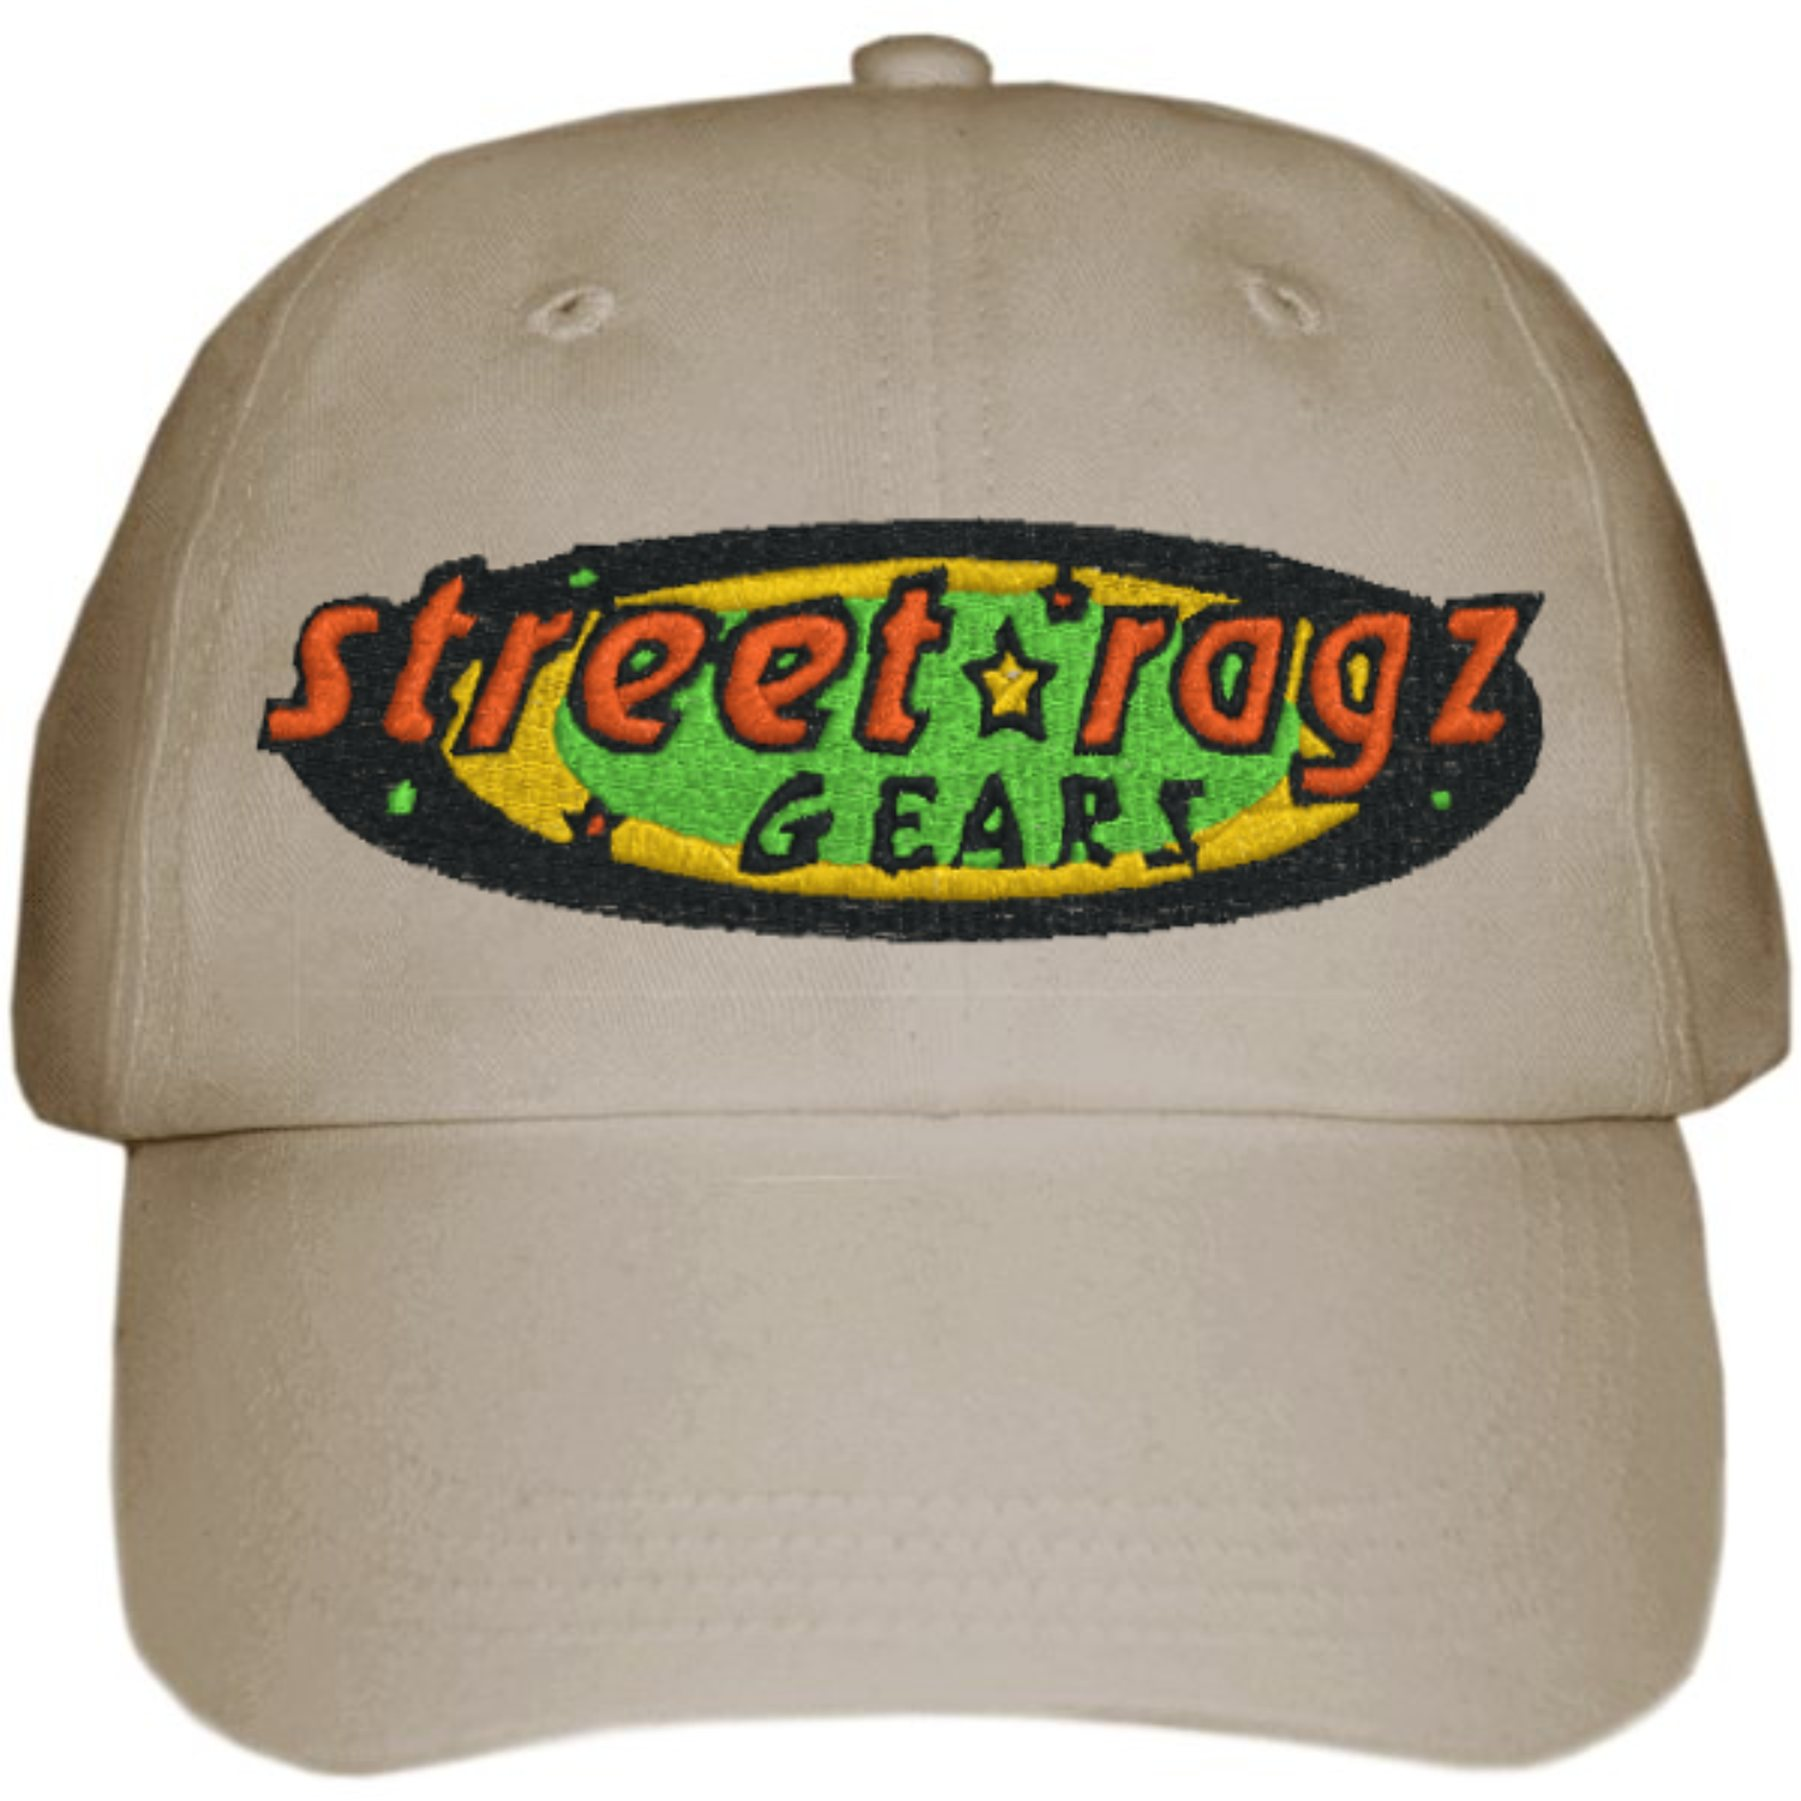 Street Ragz Green, Yellow & Red original Logo Dark Khaki Cap. FREE SHIPPING.